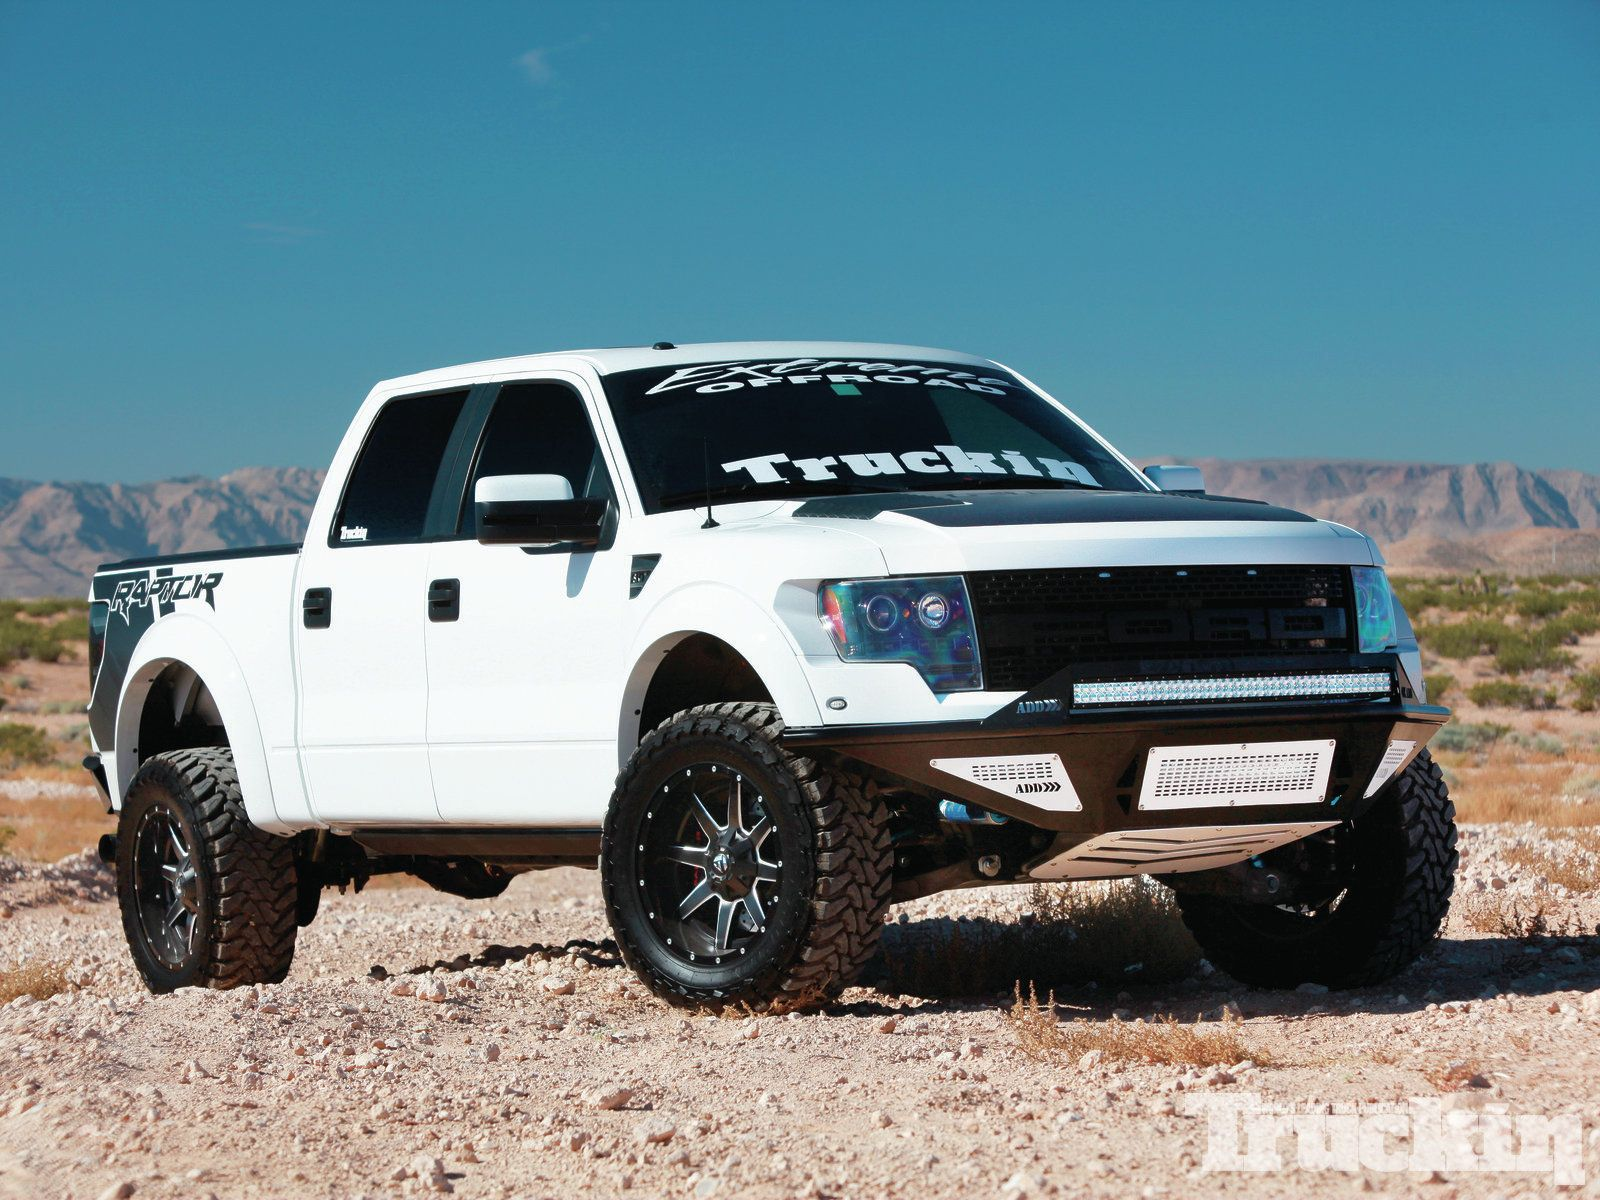 1000 ideas about 2012 ford raptor on pinterest custom ford raptor ford raptor and raptor car